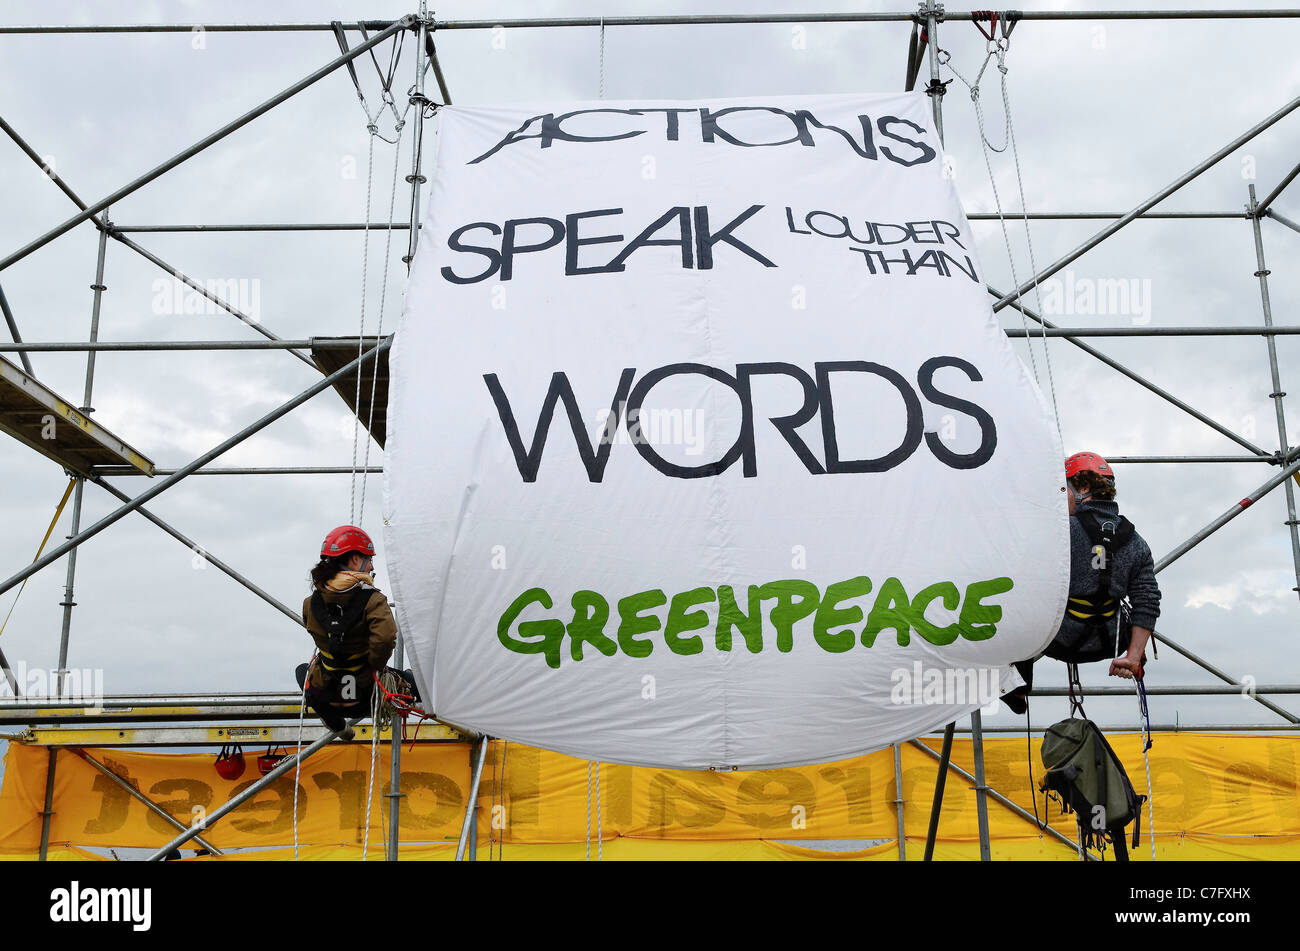 Greenpeace activists unroll banner 'Actions speak louder than words' - Stock Image